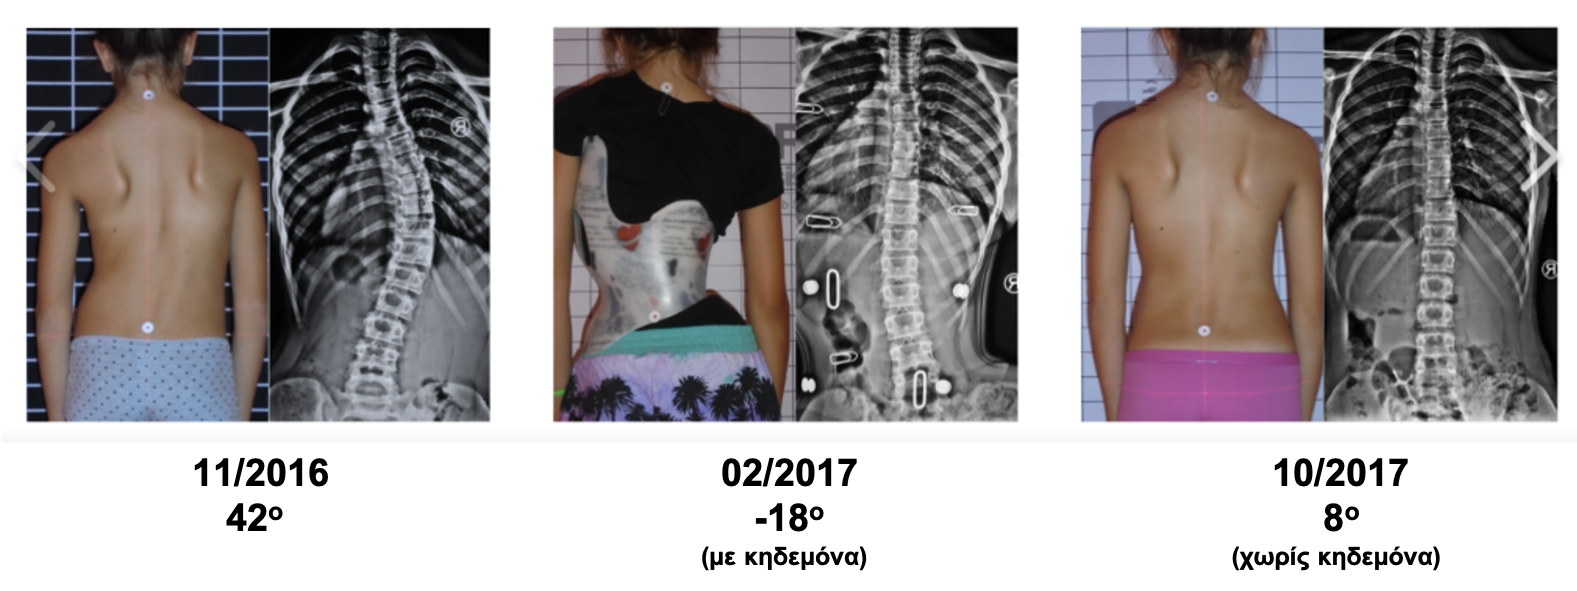 I.E. brace and Schroth scoliosis treatment